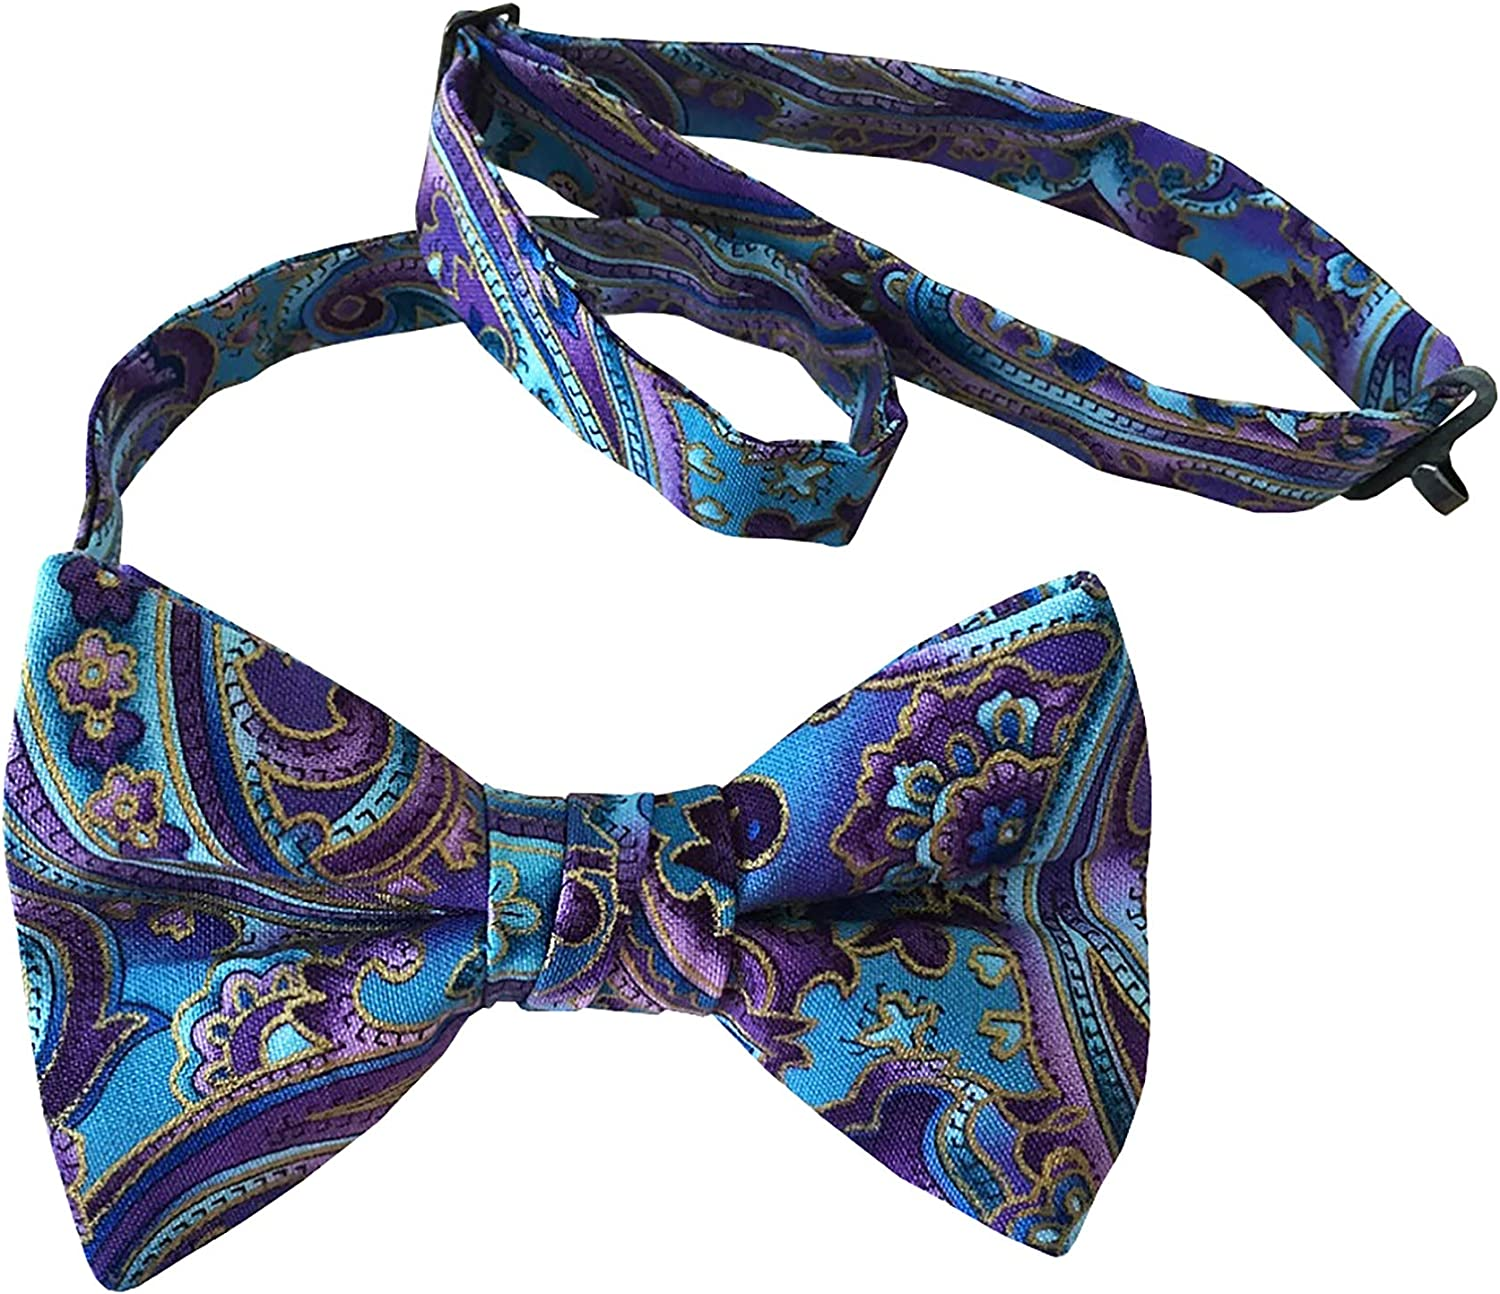 Holiday Bow Ties Mens Bow Tie Vintage Purple and Blue Paisley with Gold Metallic